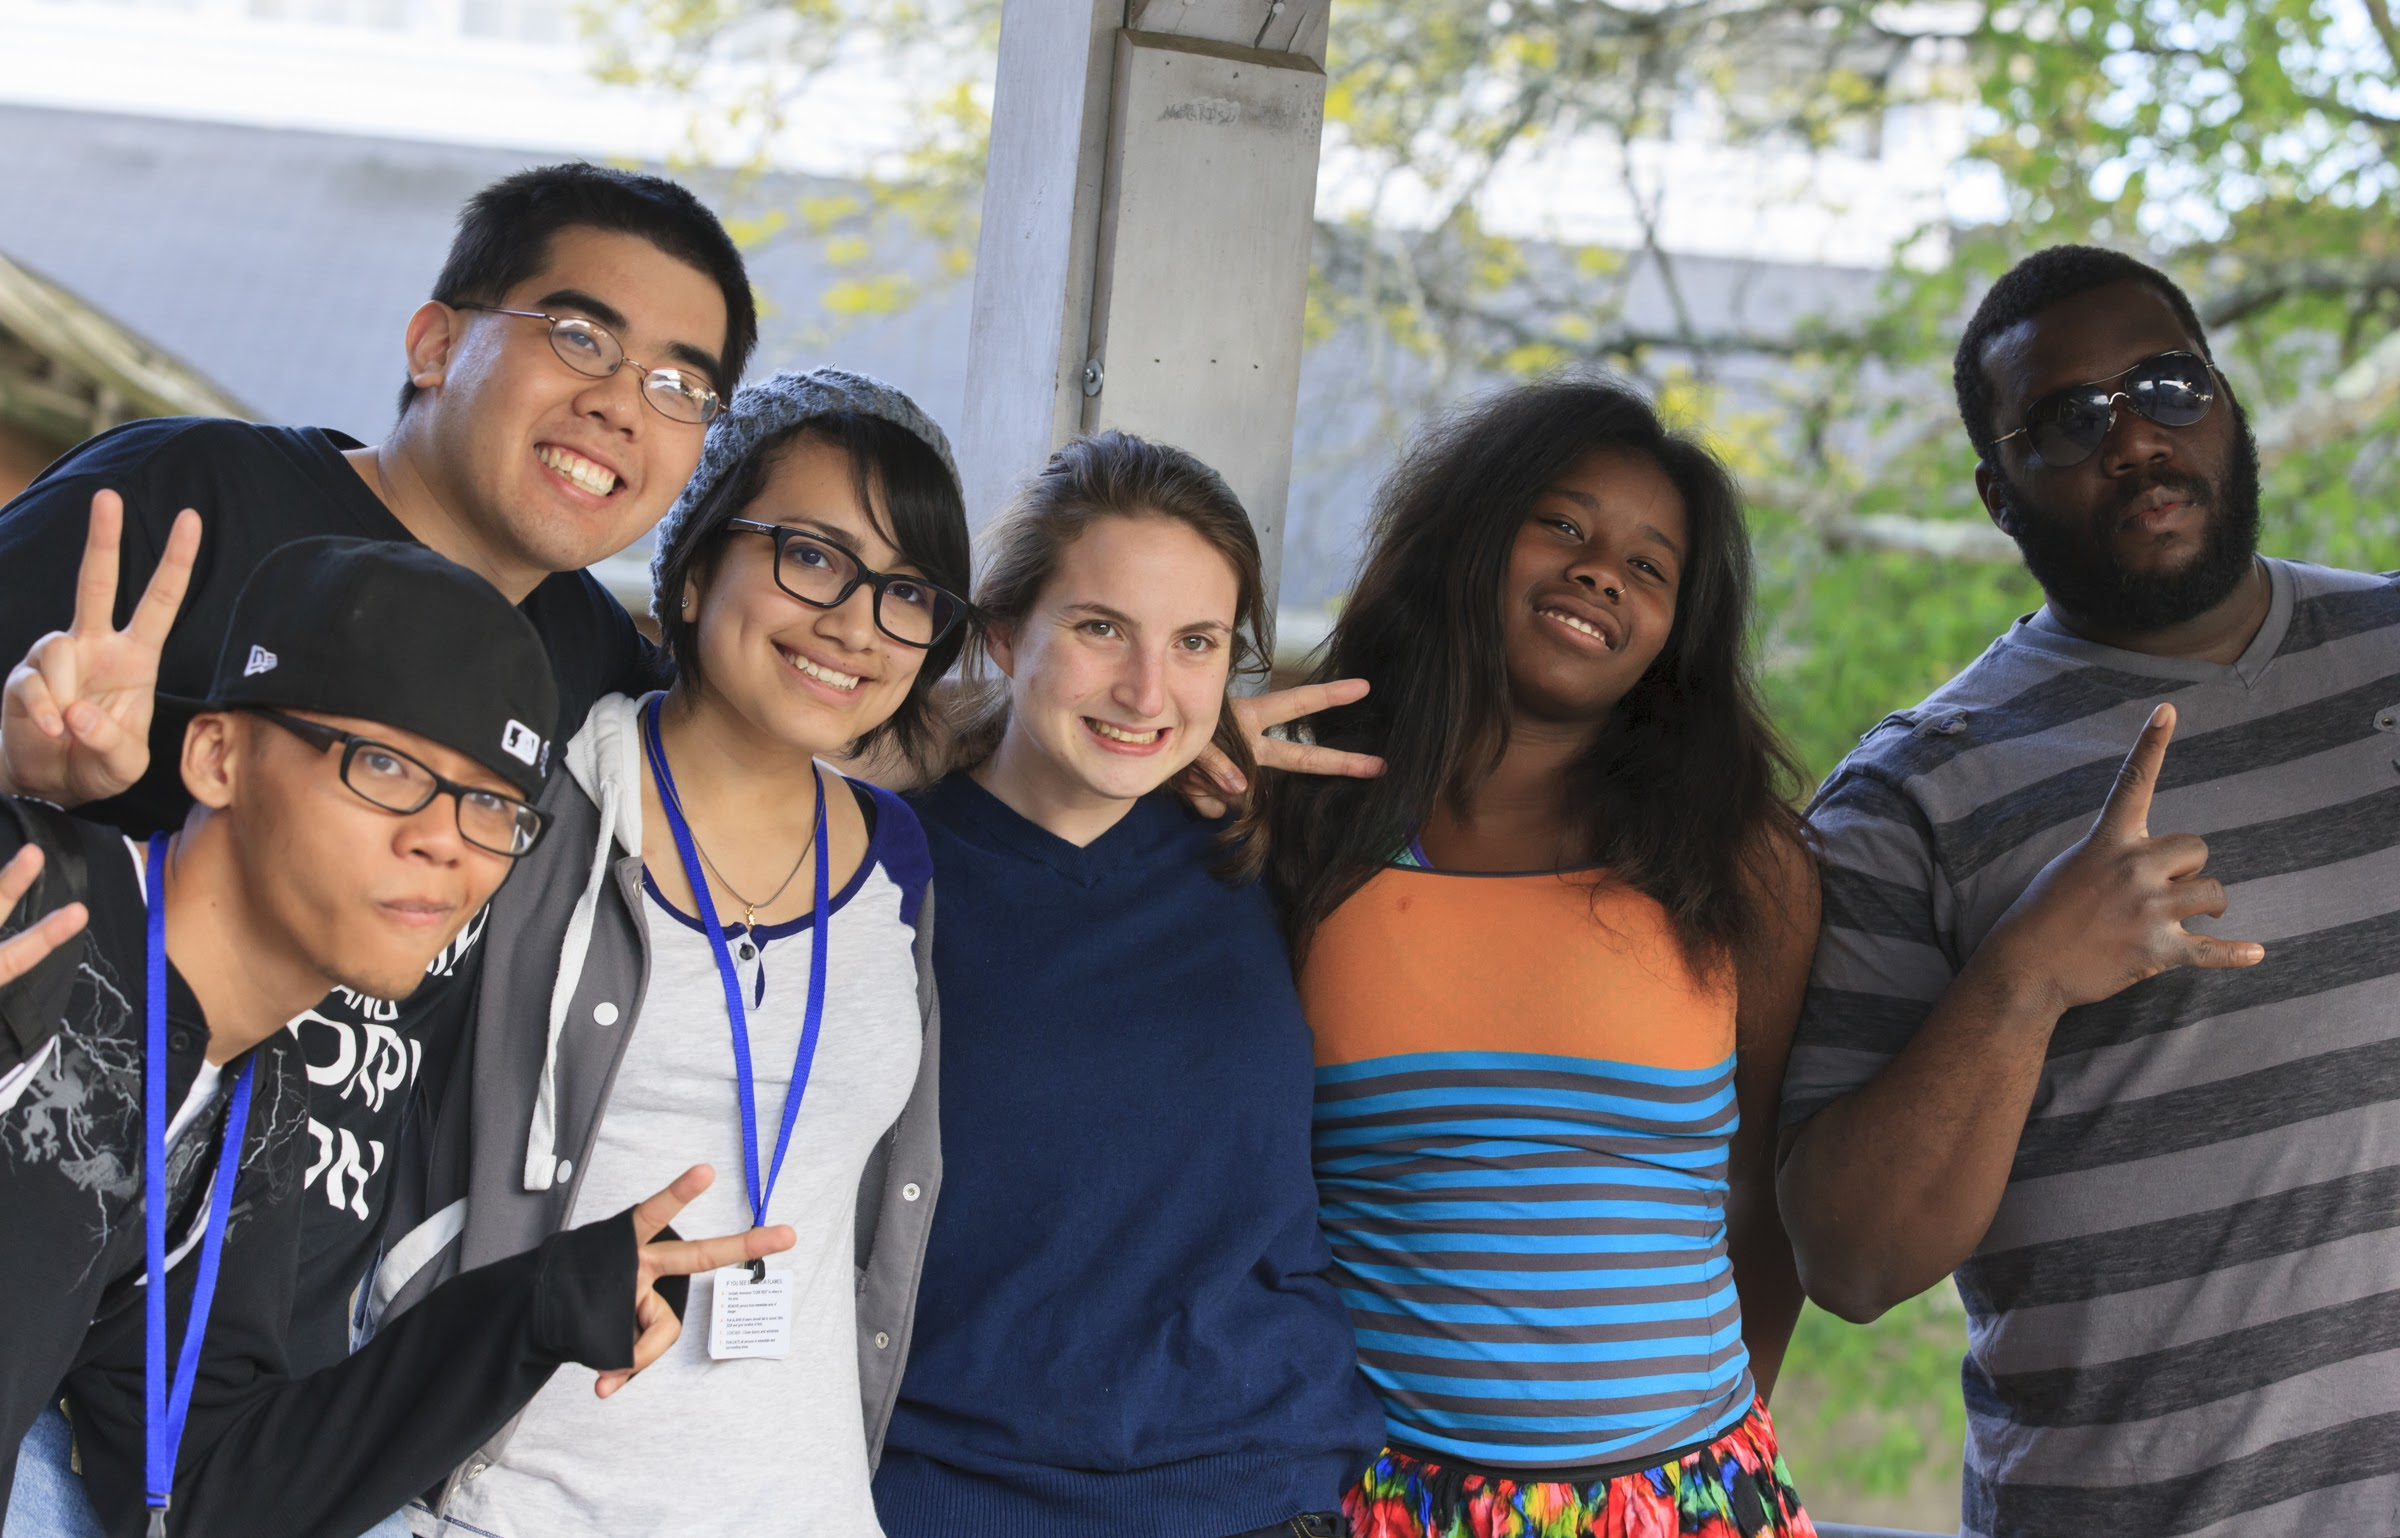 Six young people facing forward, arms interlinked, smiling and giving peace signs